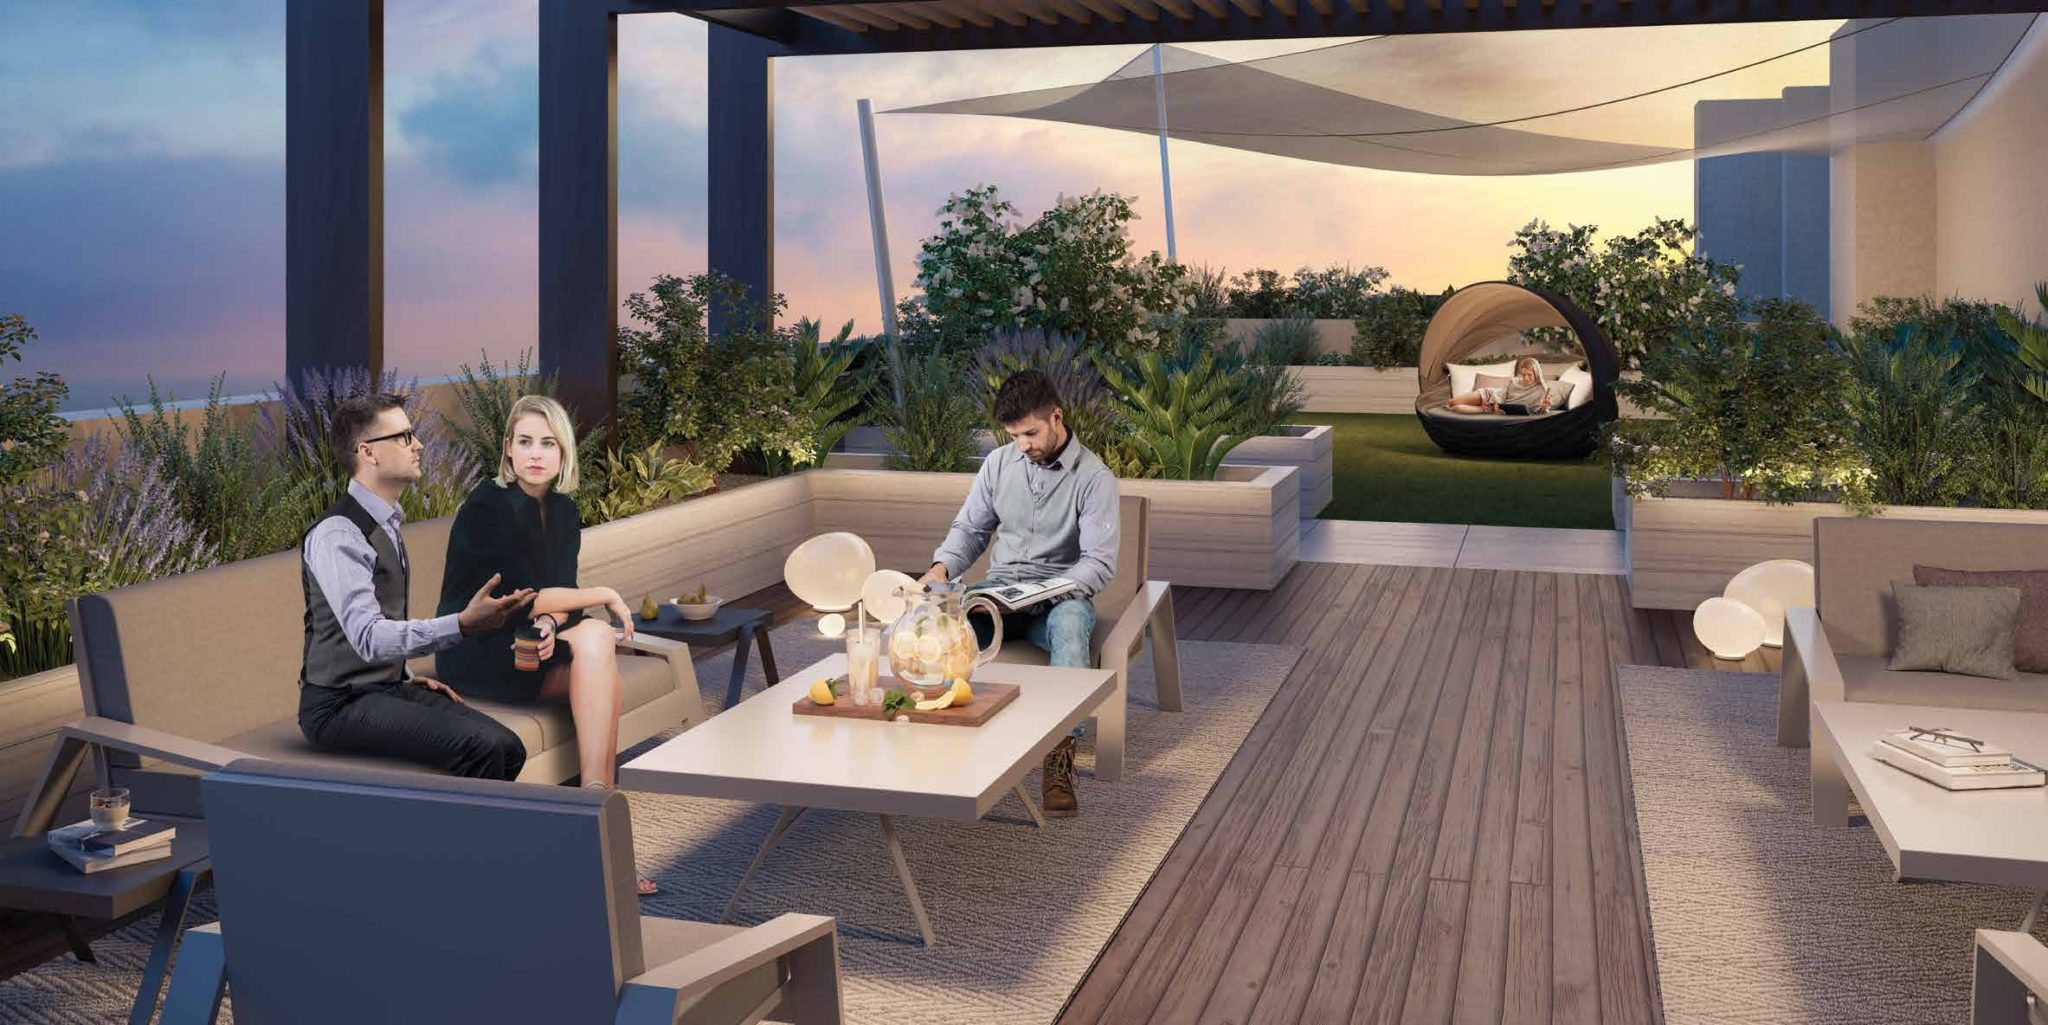 WIND DOWN IN OUR COMMUNITY- FIRST LIVING SPACES